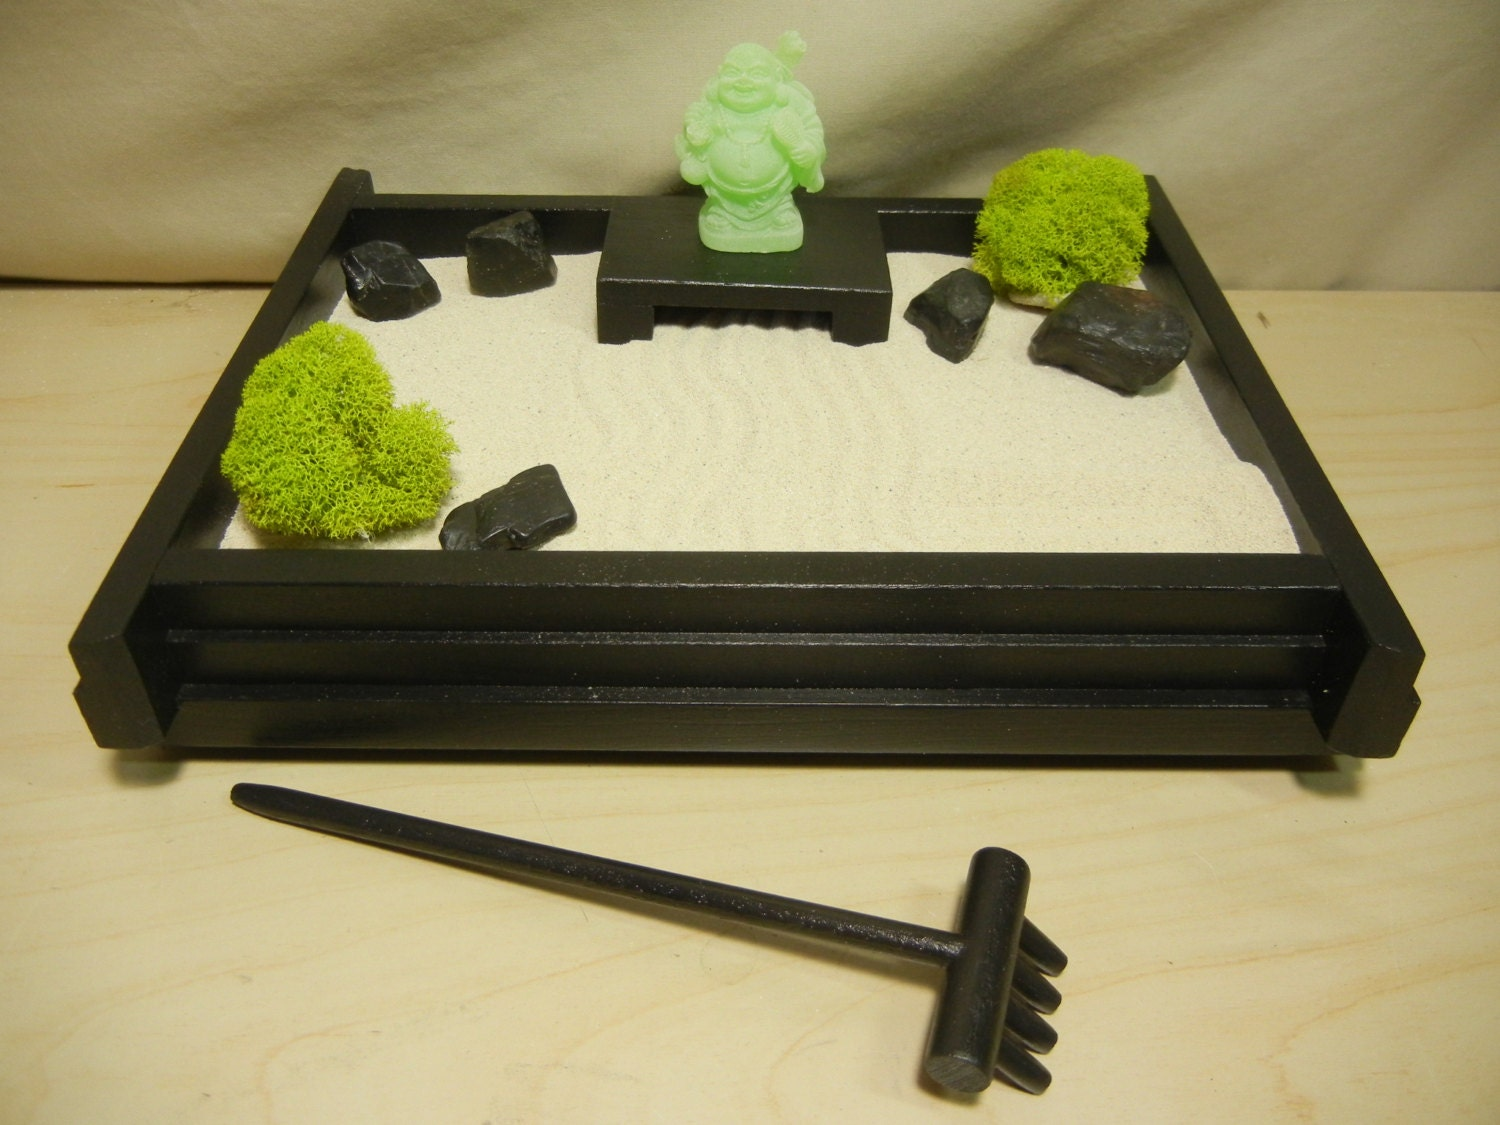 S 03fb Small Desk Or Table Top Zen Garden With Frosted Jade